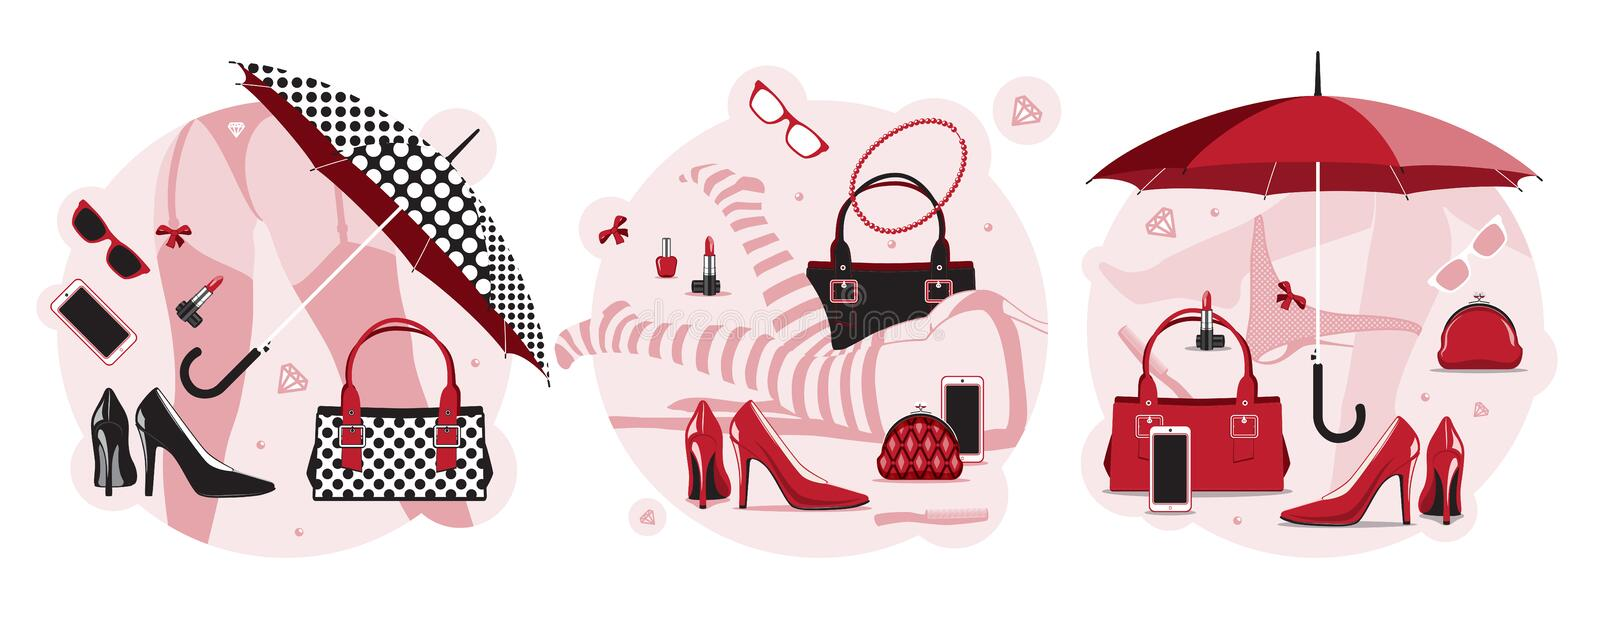 Women things set vector illustration